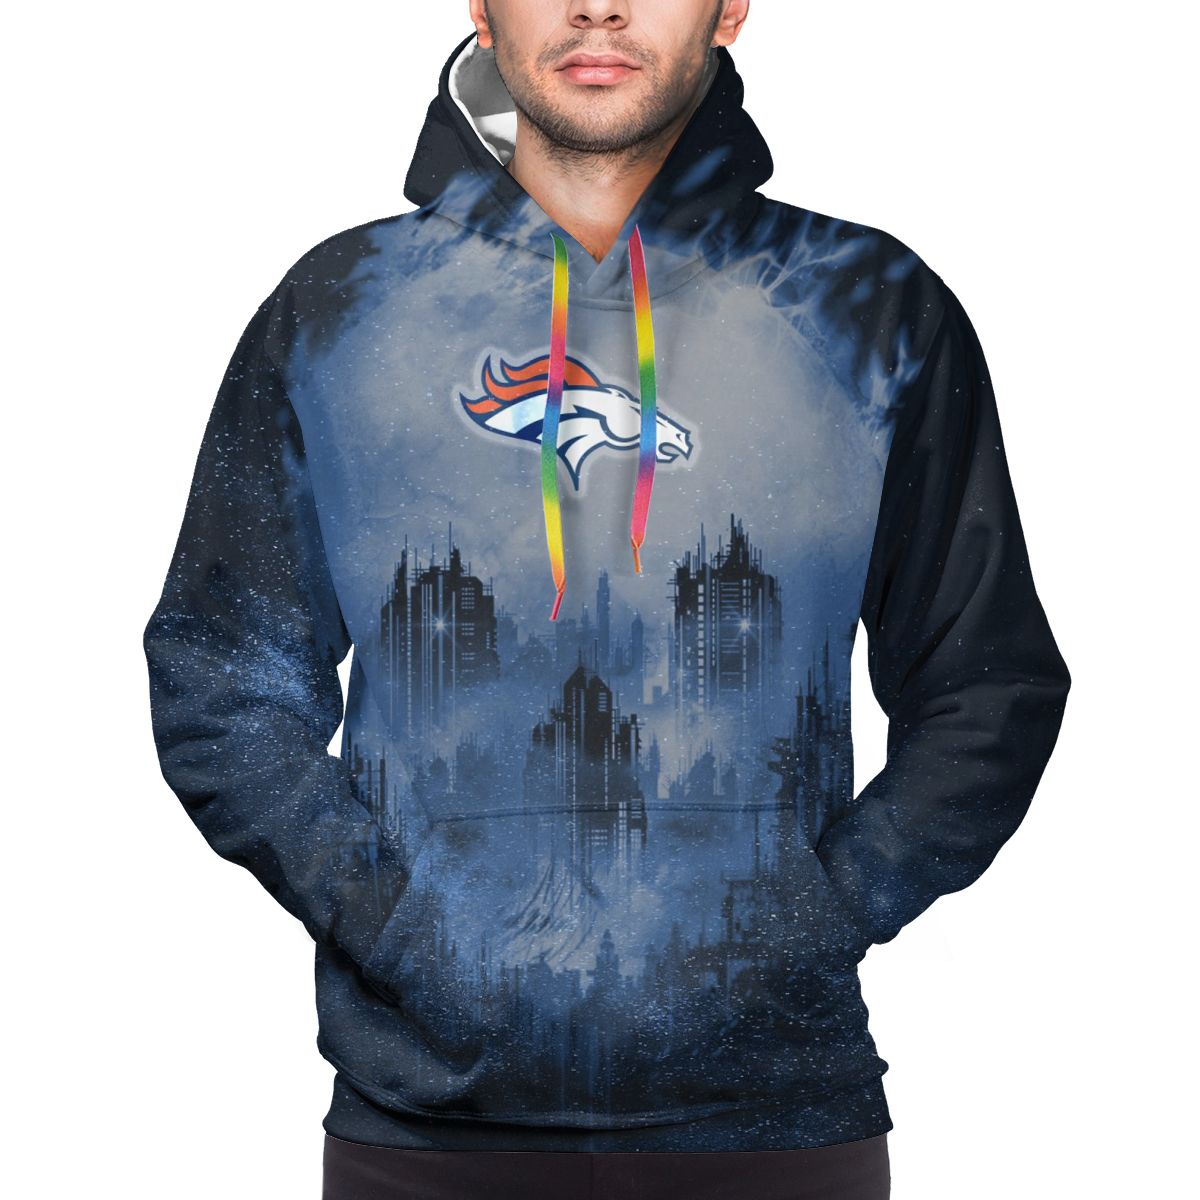 Armageddon Broncos Logo Print Hoodies For Men Pullover Sweatshirt